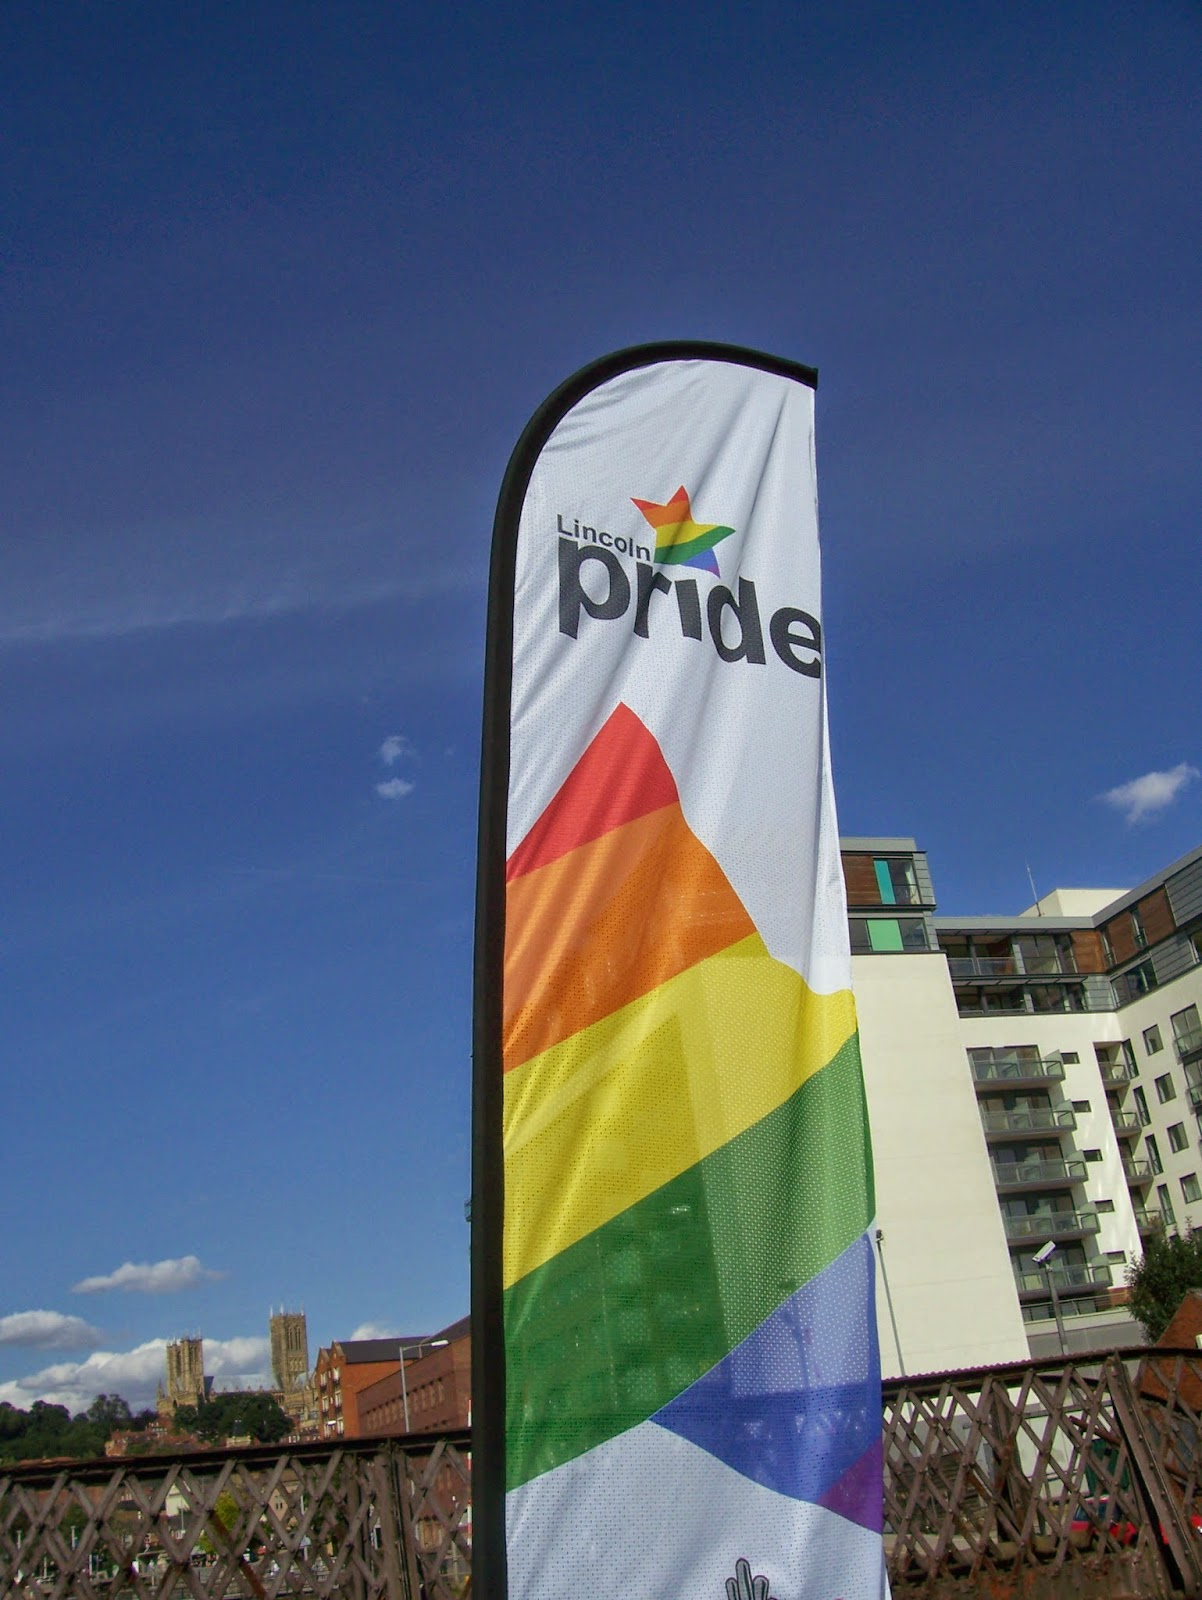 Lincoln Pride flag in 2009